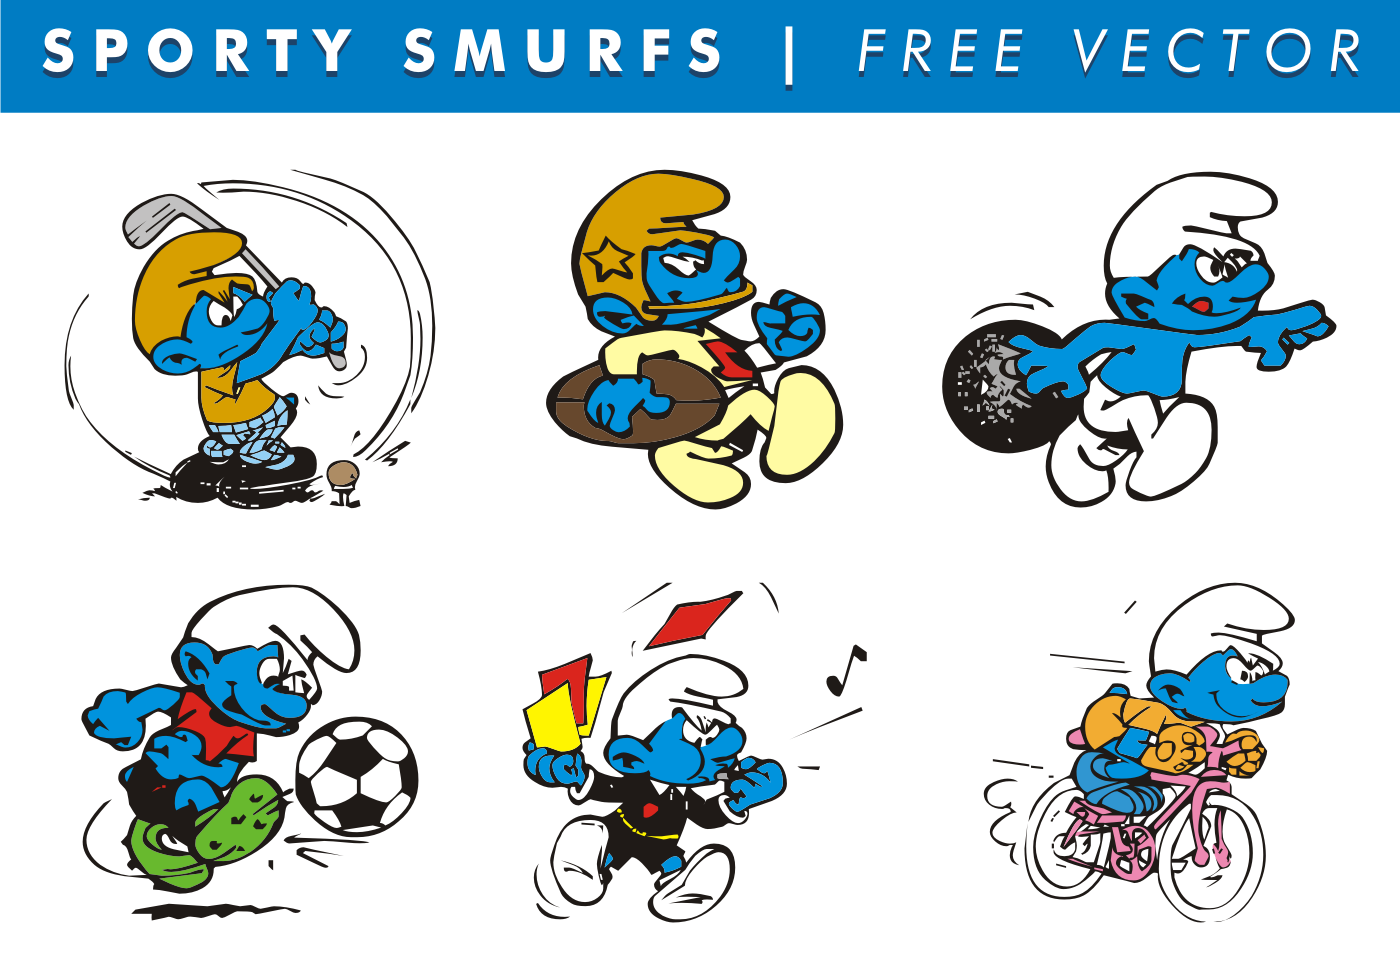 sporty smurfs free vector download free vector art  stock graphics   images smurf clipart pictures smurf clip art free